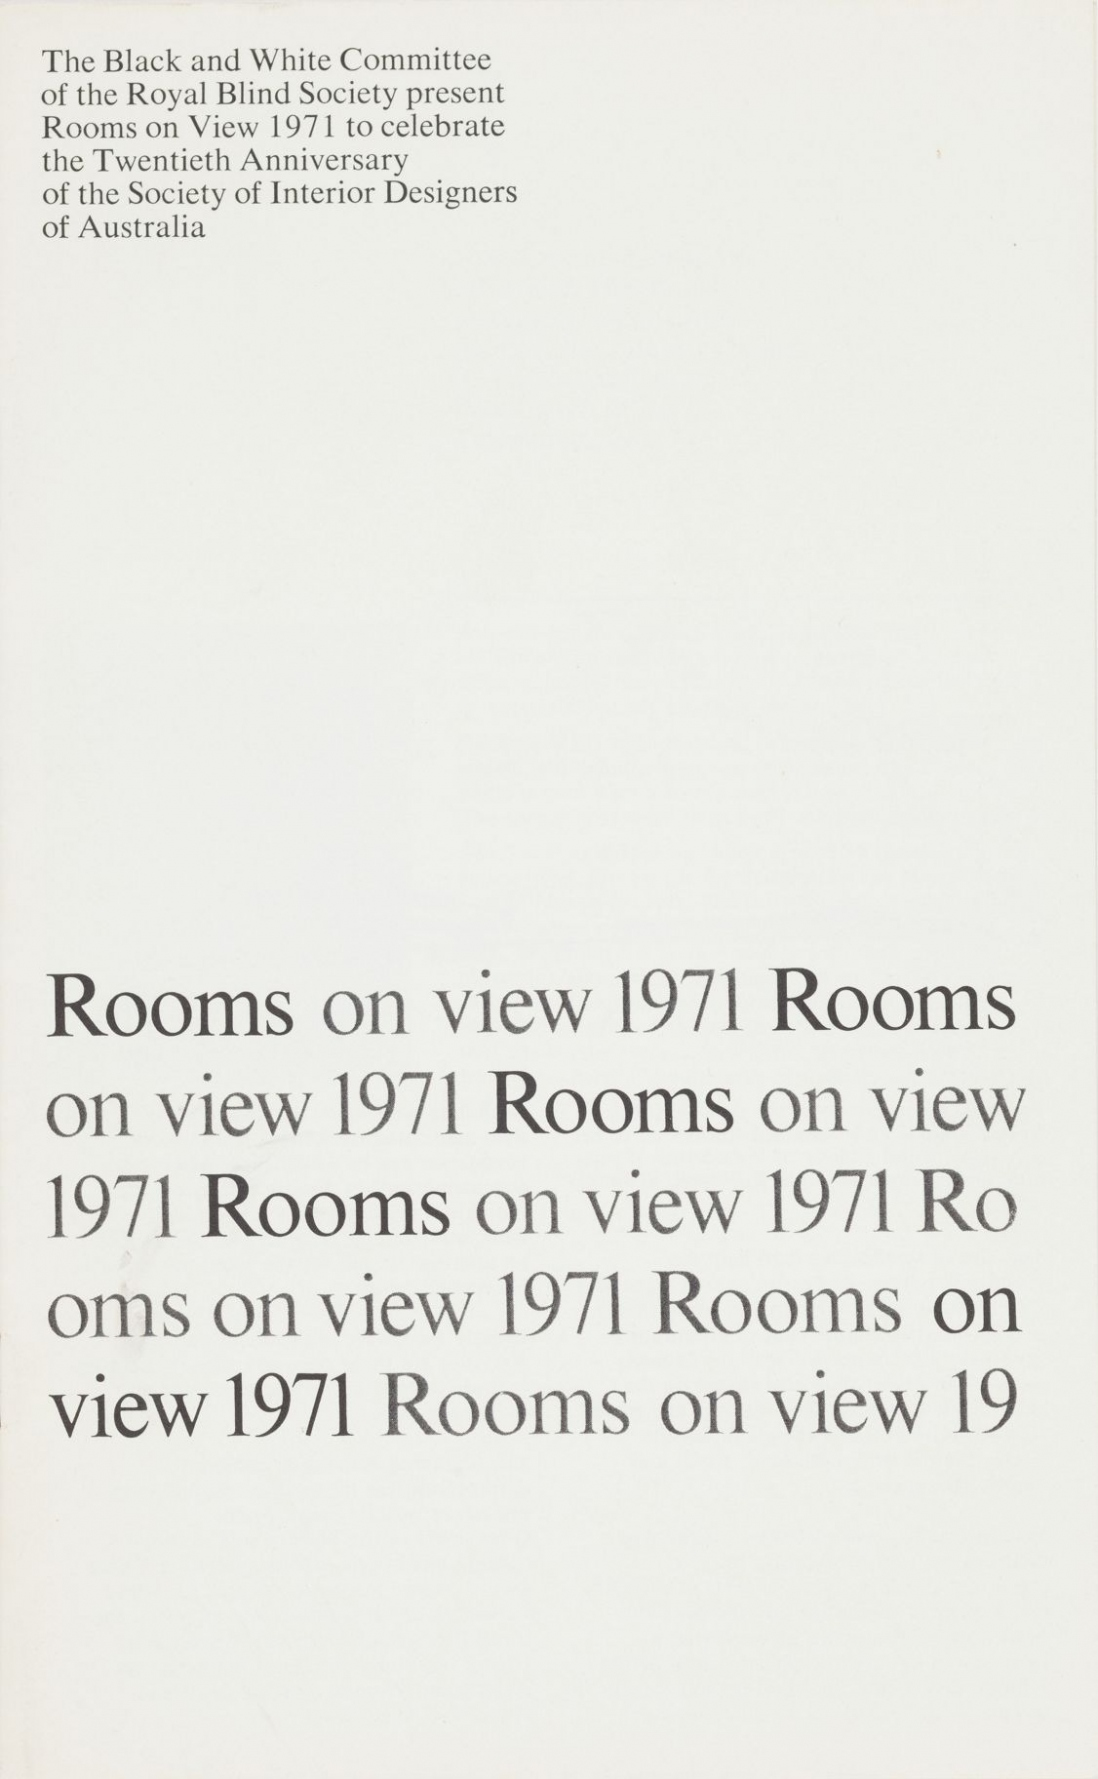 'Rooms on view 1971'